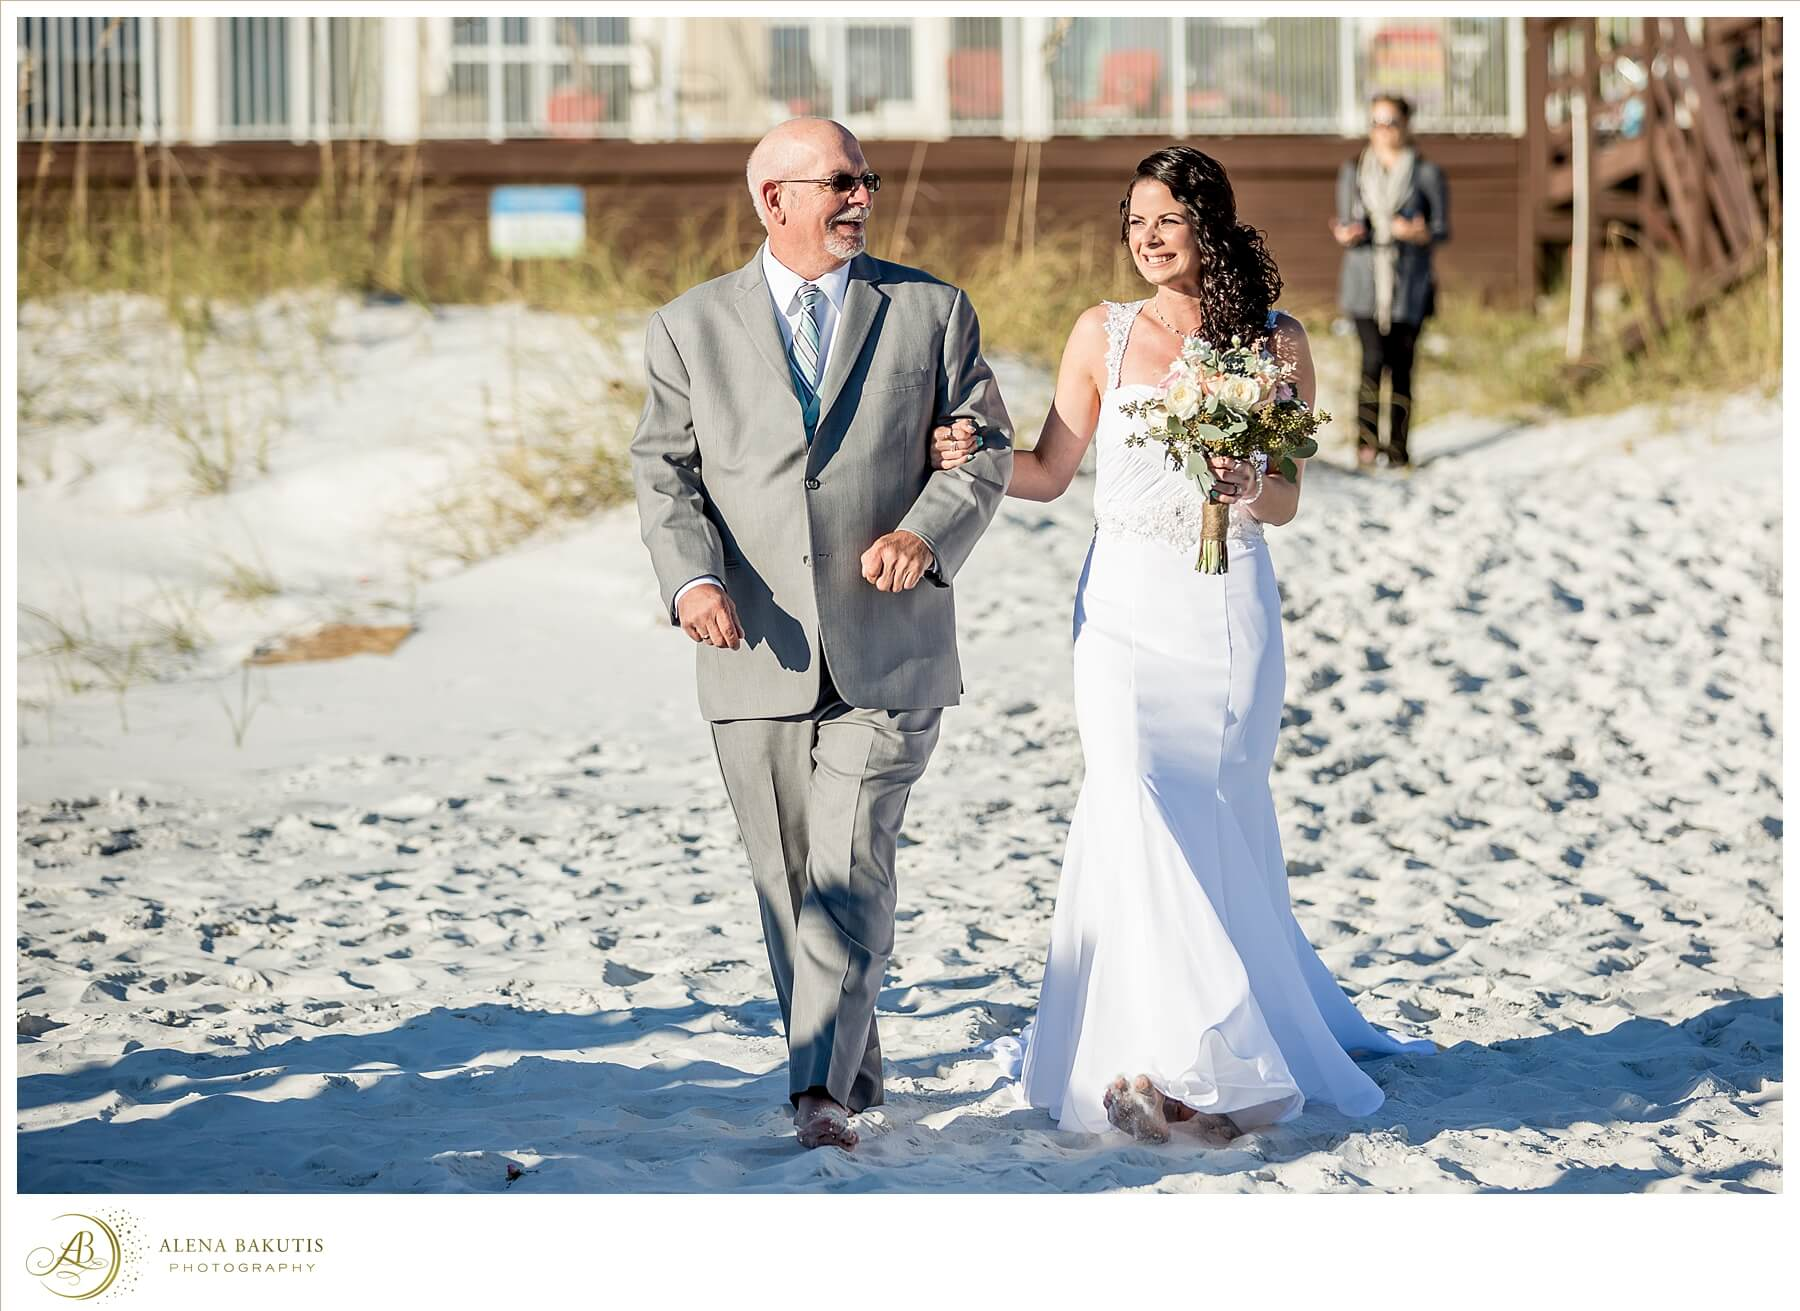 destin beach weddings Alena Bakutis Photography - Amber Brandon-343_WEB